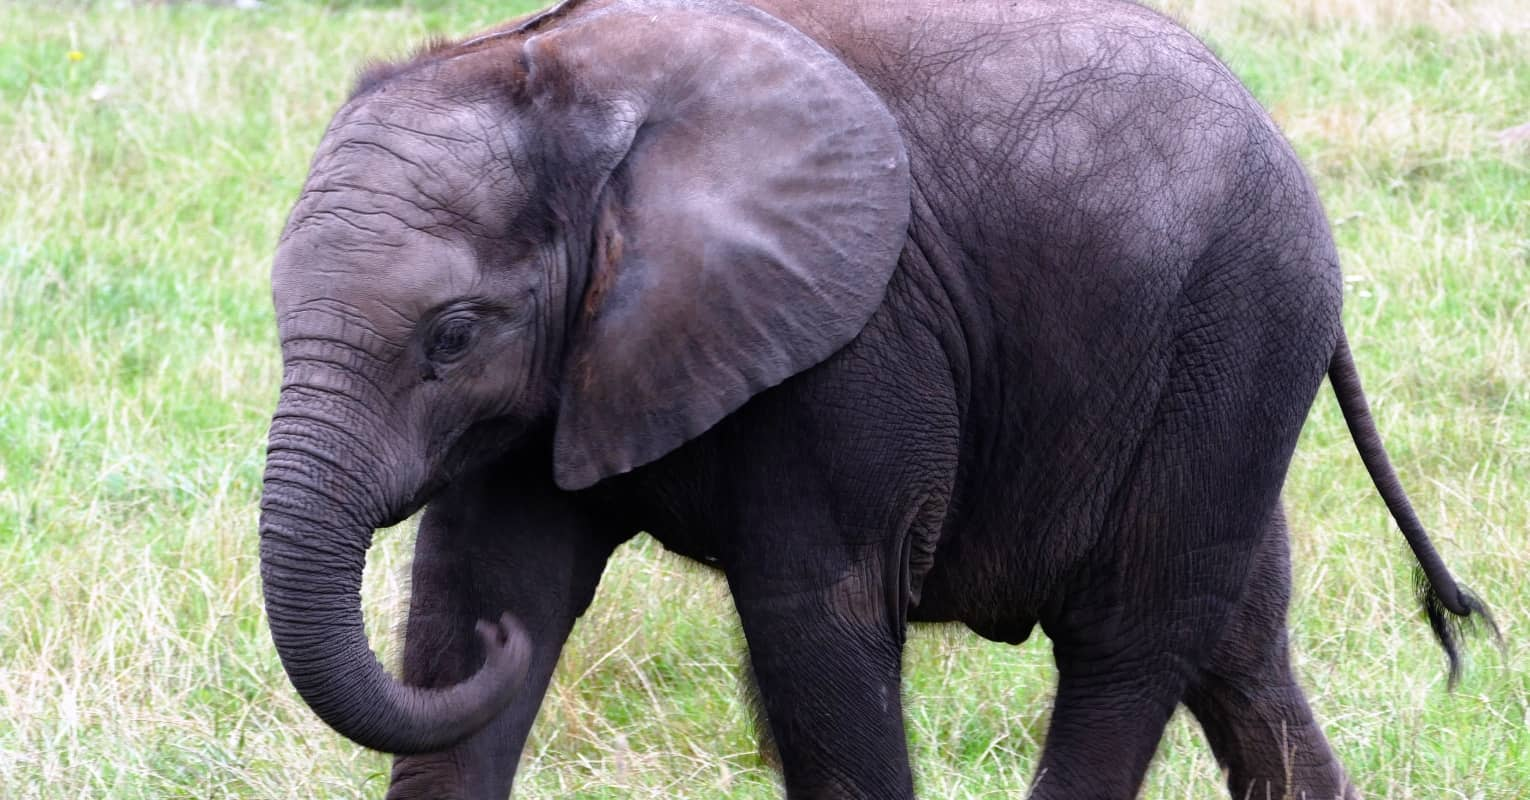 Heartwarming video shows the moment the 'world's loneliest elephant' makes his first friend in years